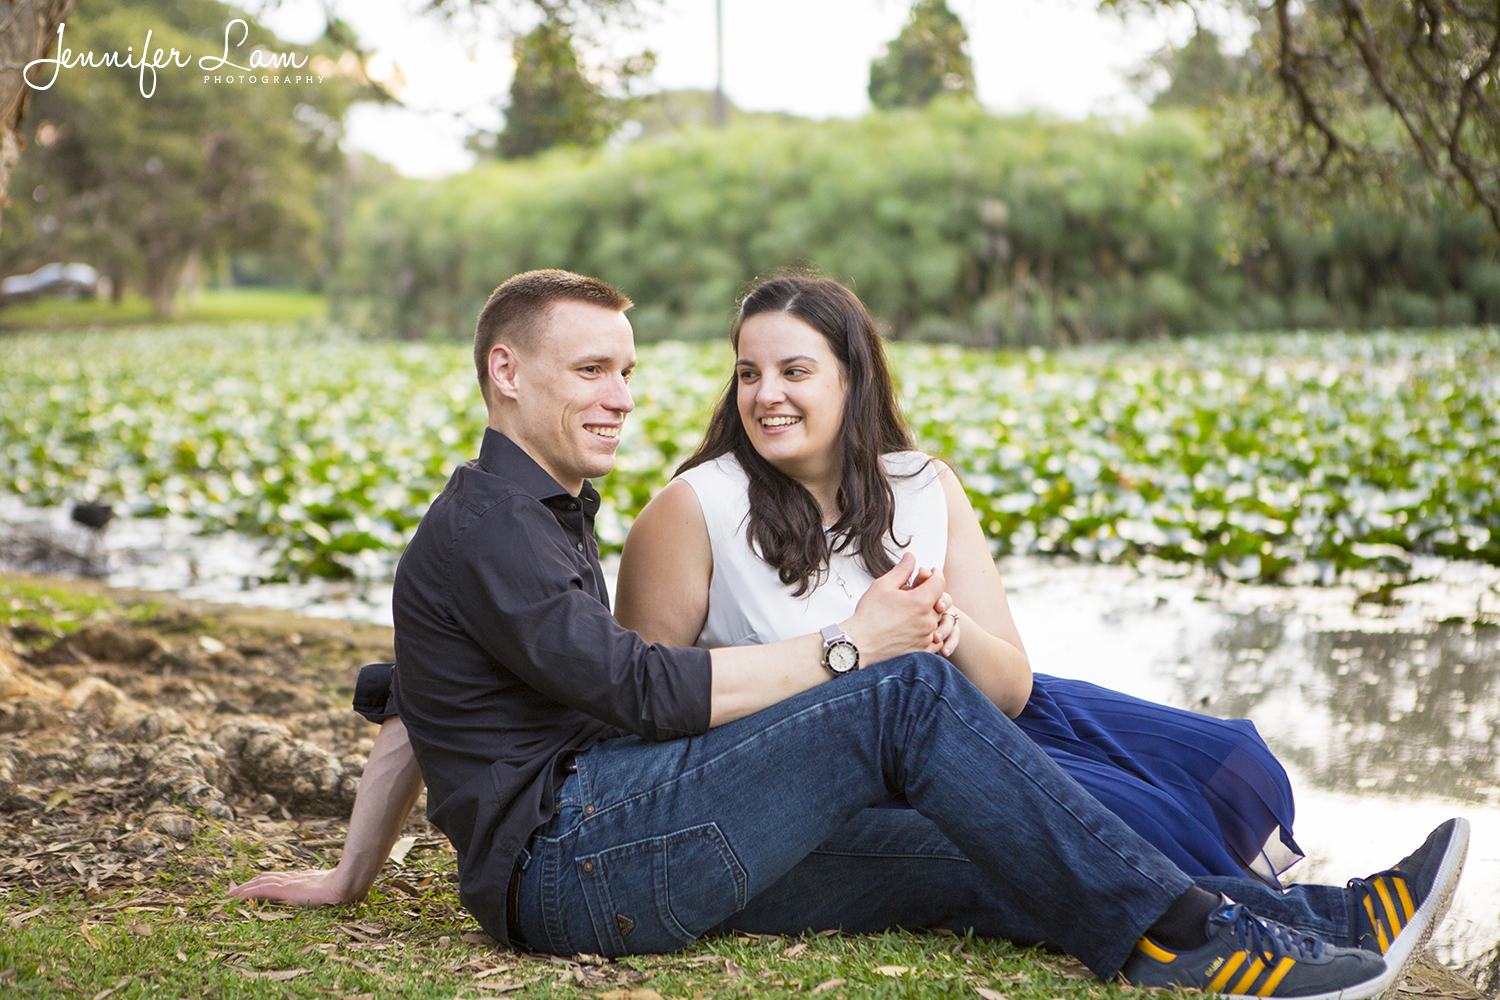 Engagement Session - Sydney Wedding Photographer - Jennifer Lam Photography (13).jpg